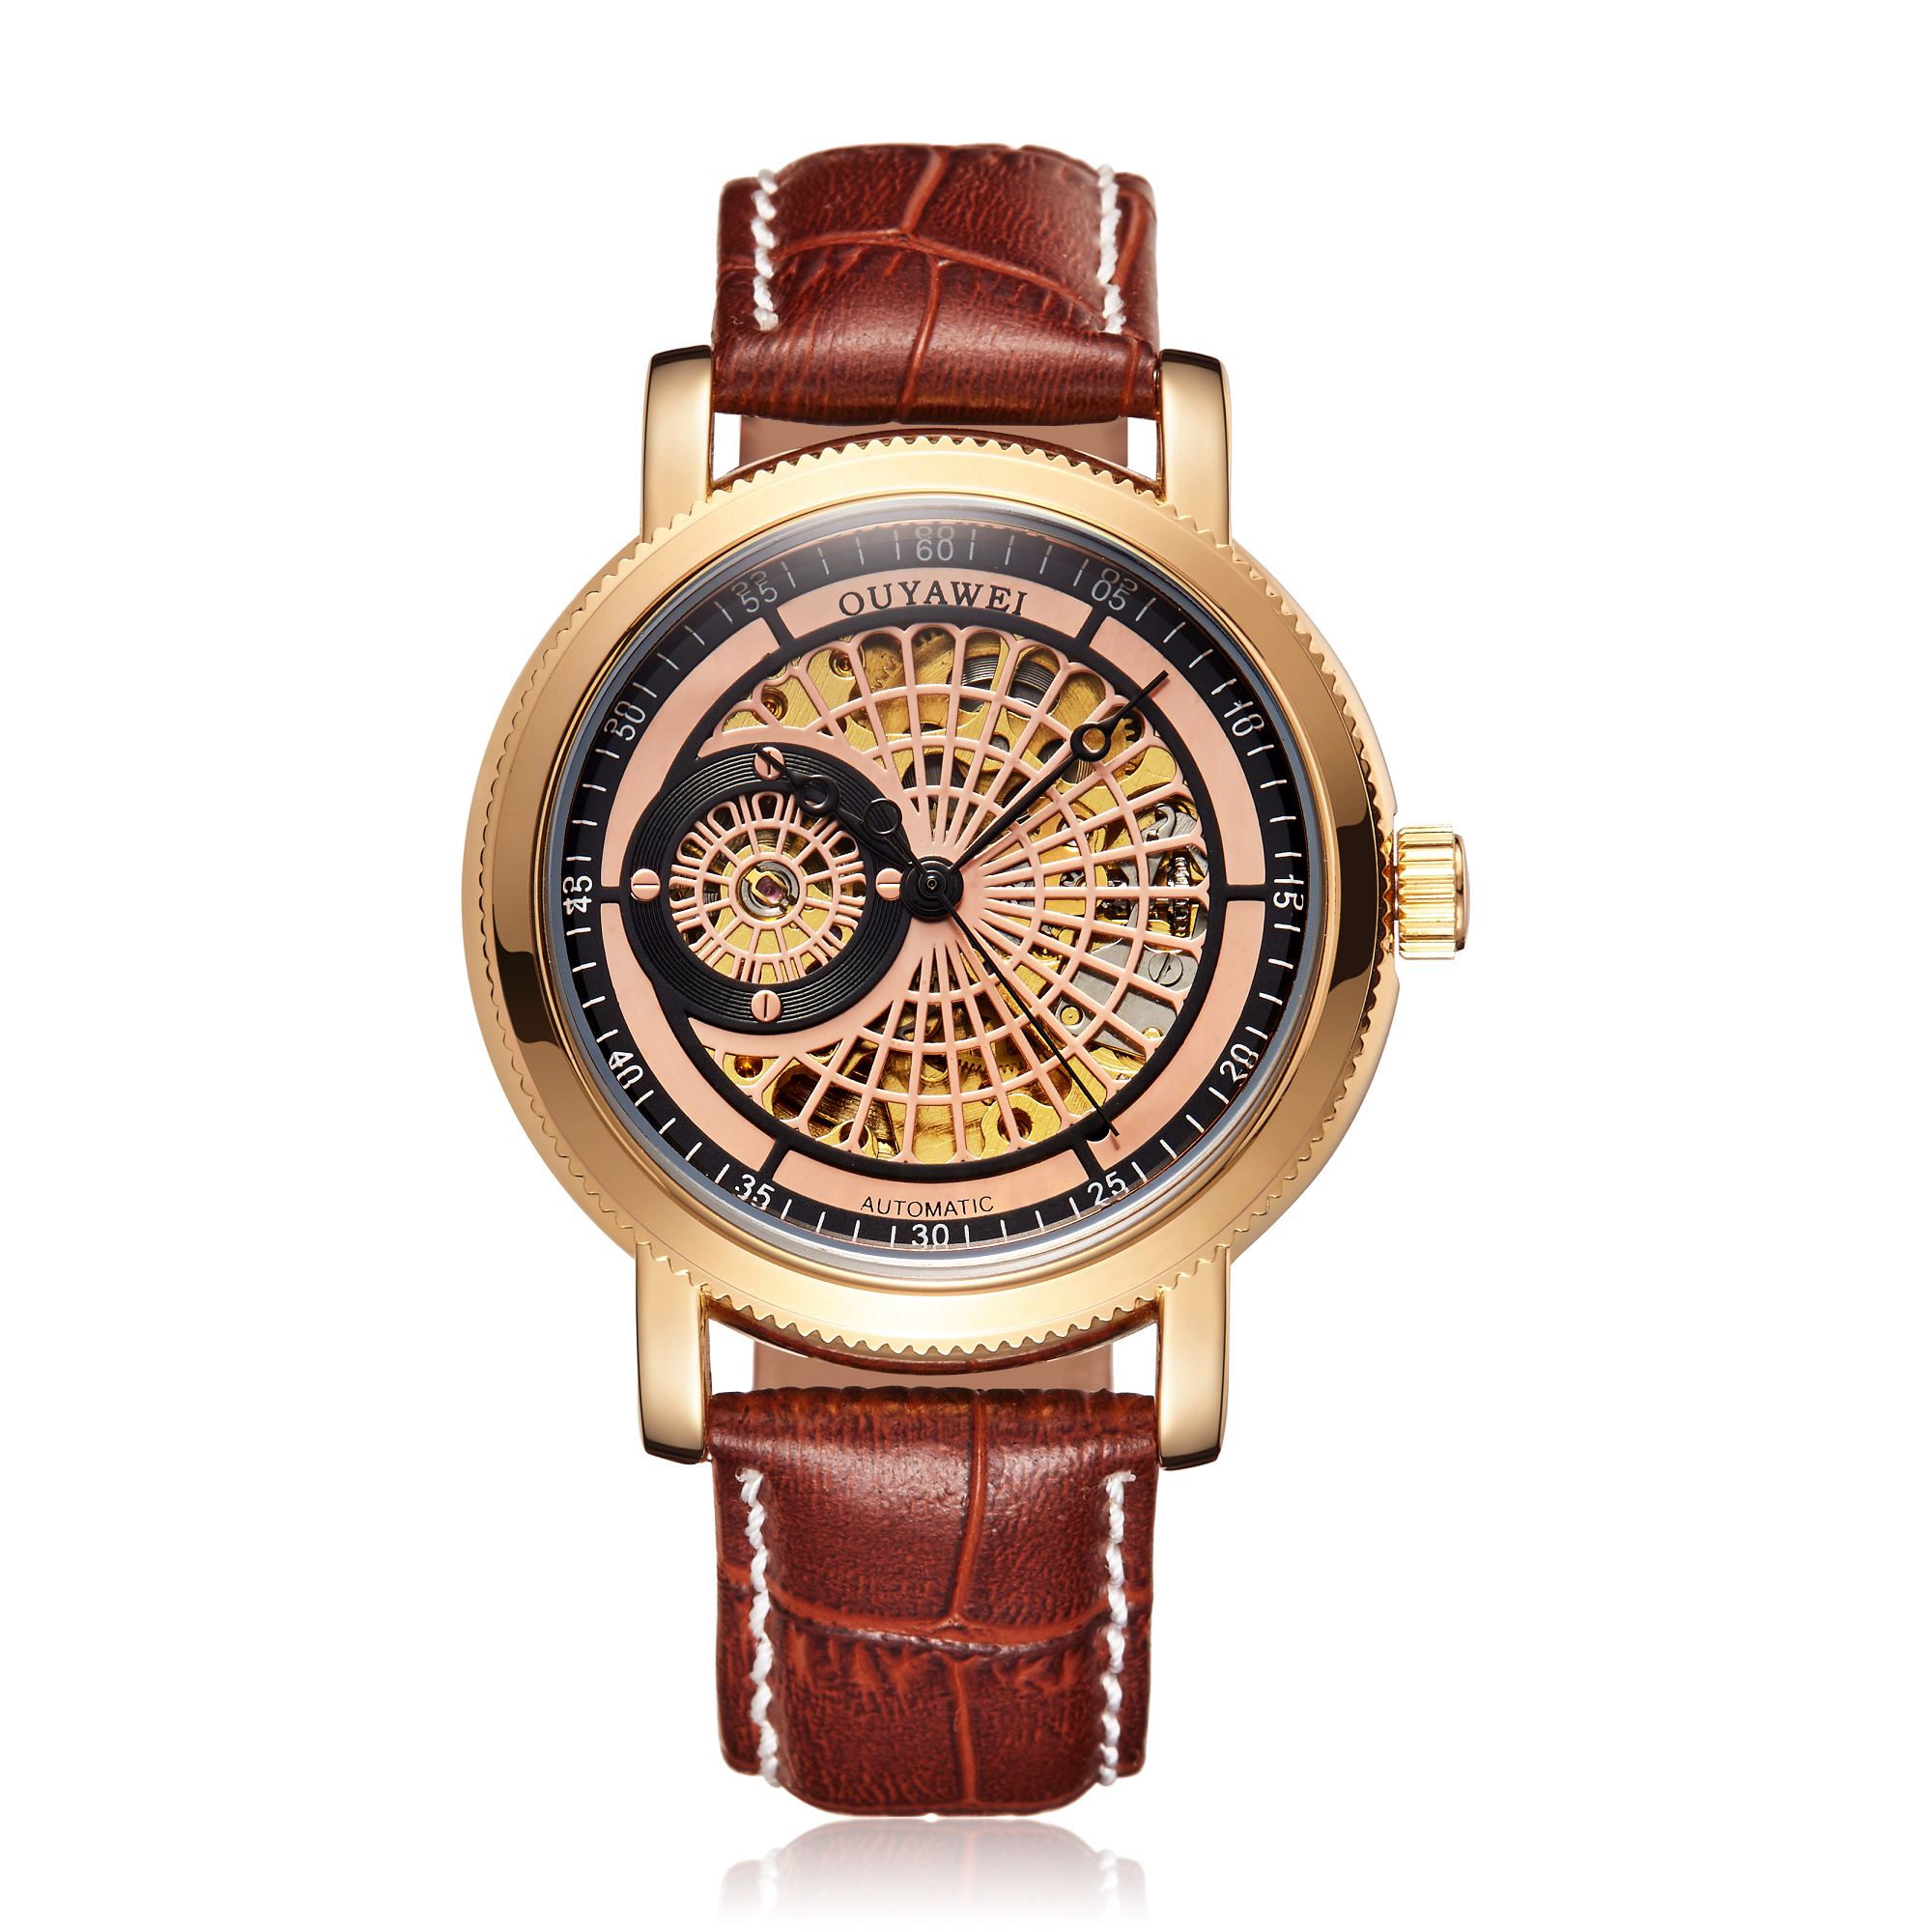 H0fd182b2a3914a4288e44cf4af9a9427v Mechanical Gold Watch Luxury Brand Self-winding